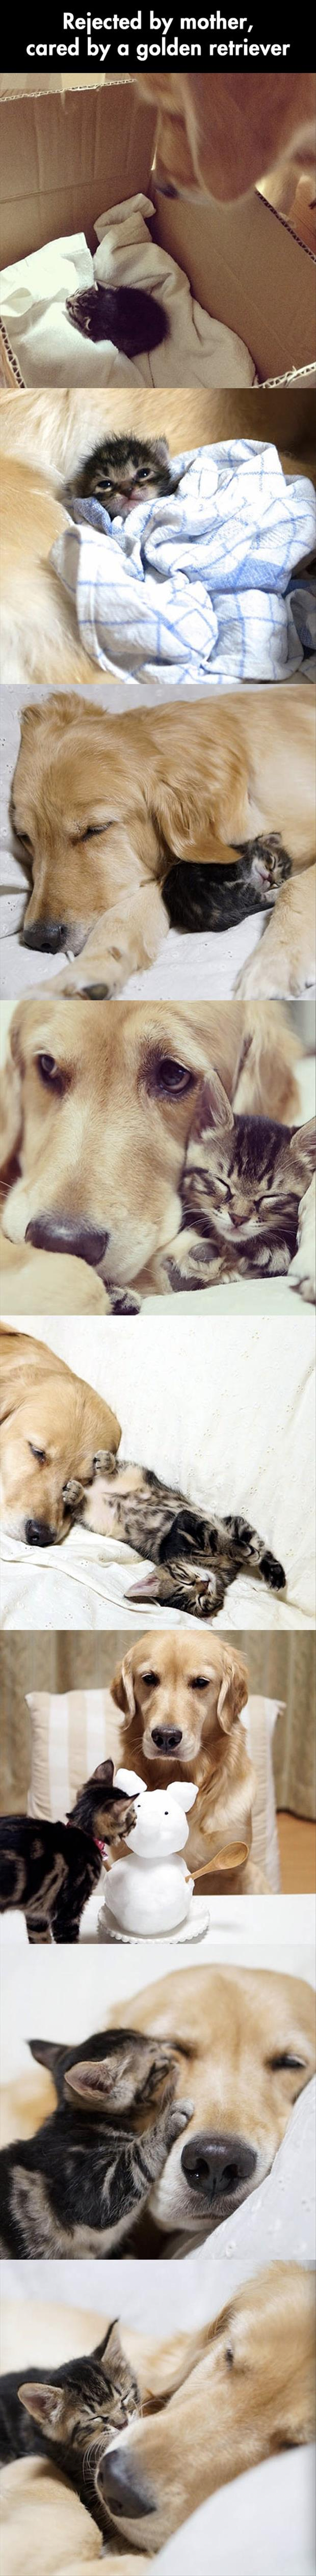 golden retriever takes care of cat